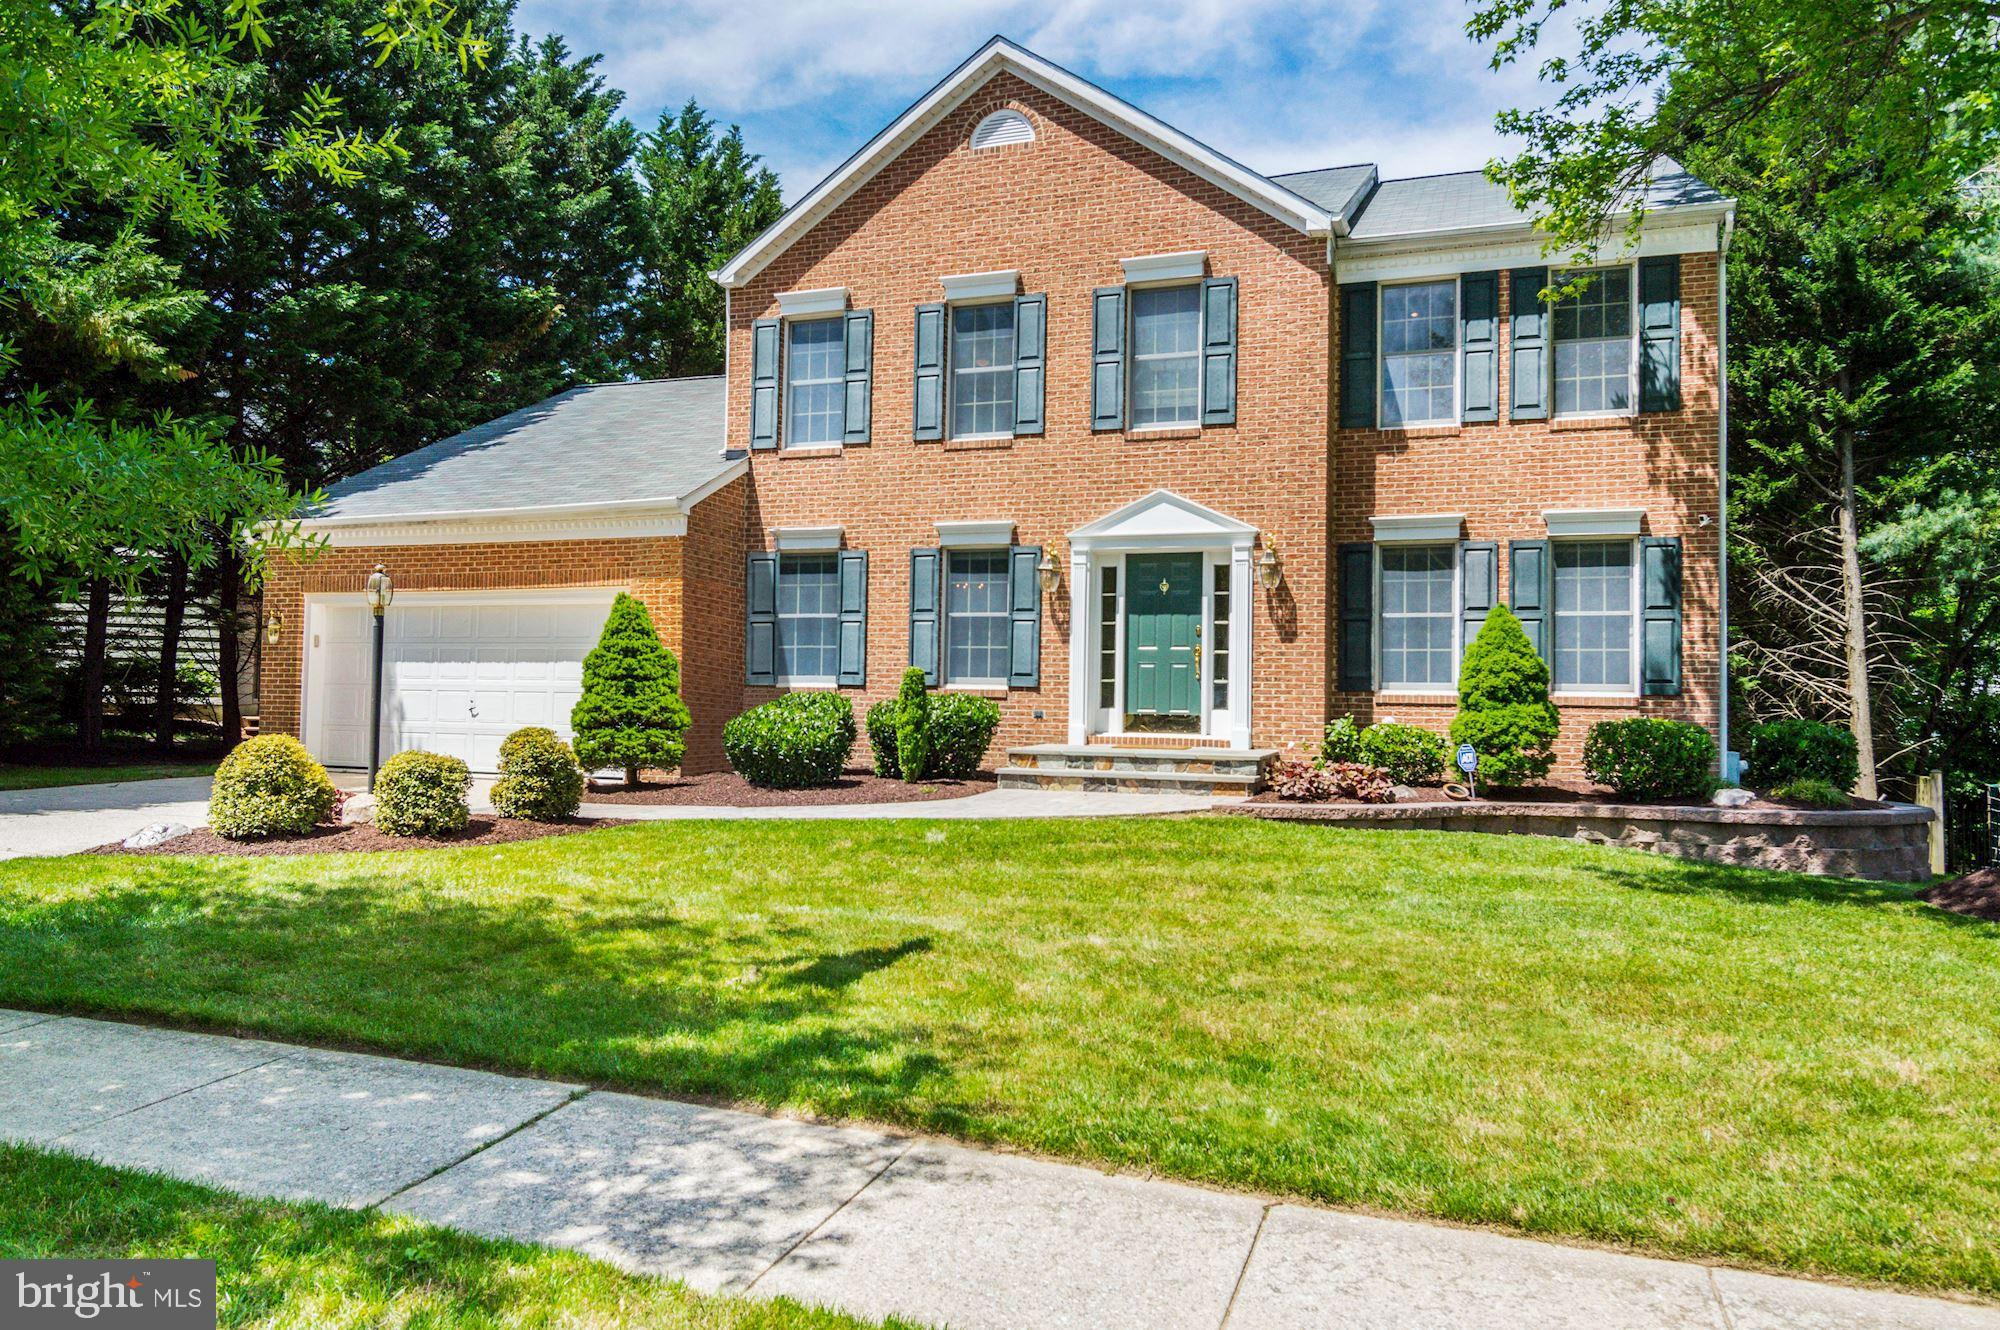 6309 GOLDEN STAR PLACE, COLUMBIA, MD 21044